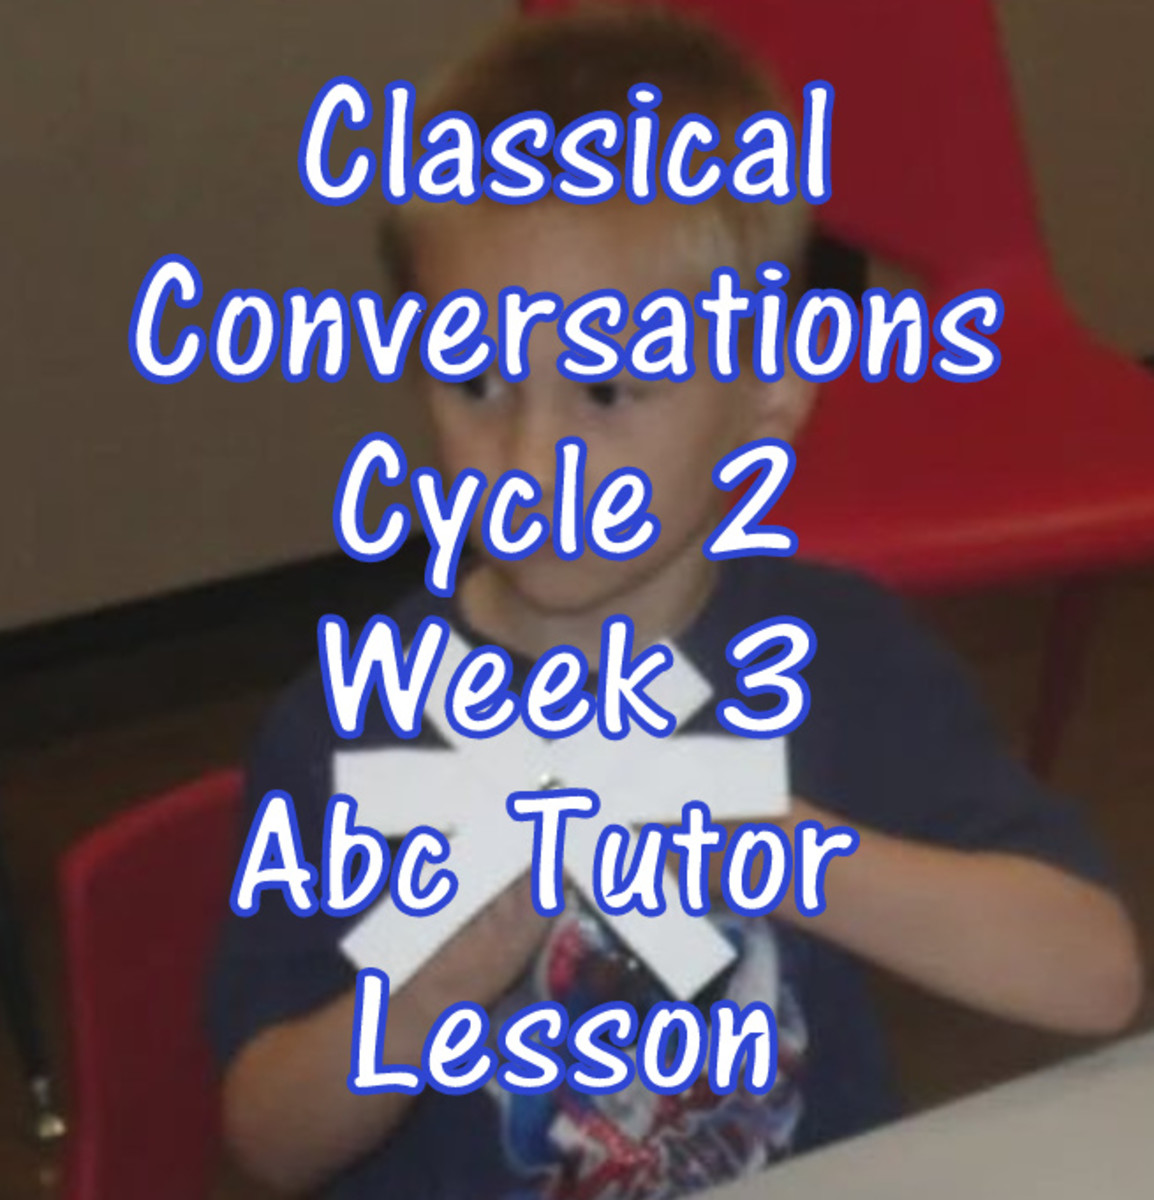 Classical Conversations Cycle 2 Week 3 Abc Tutor Plan